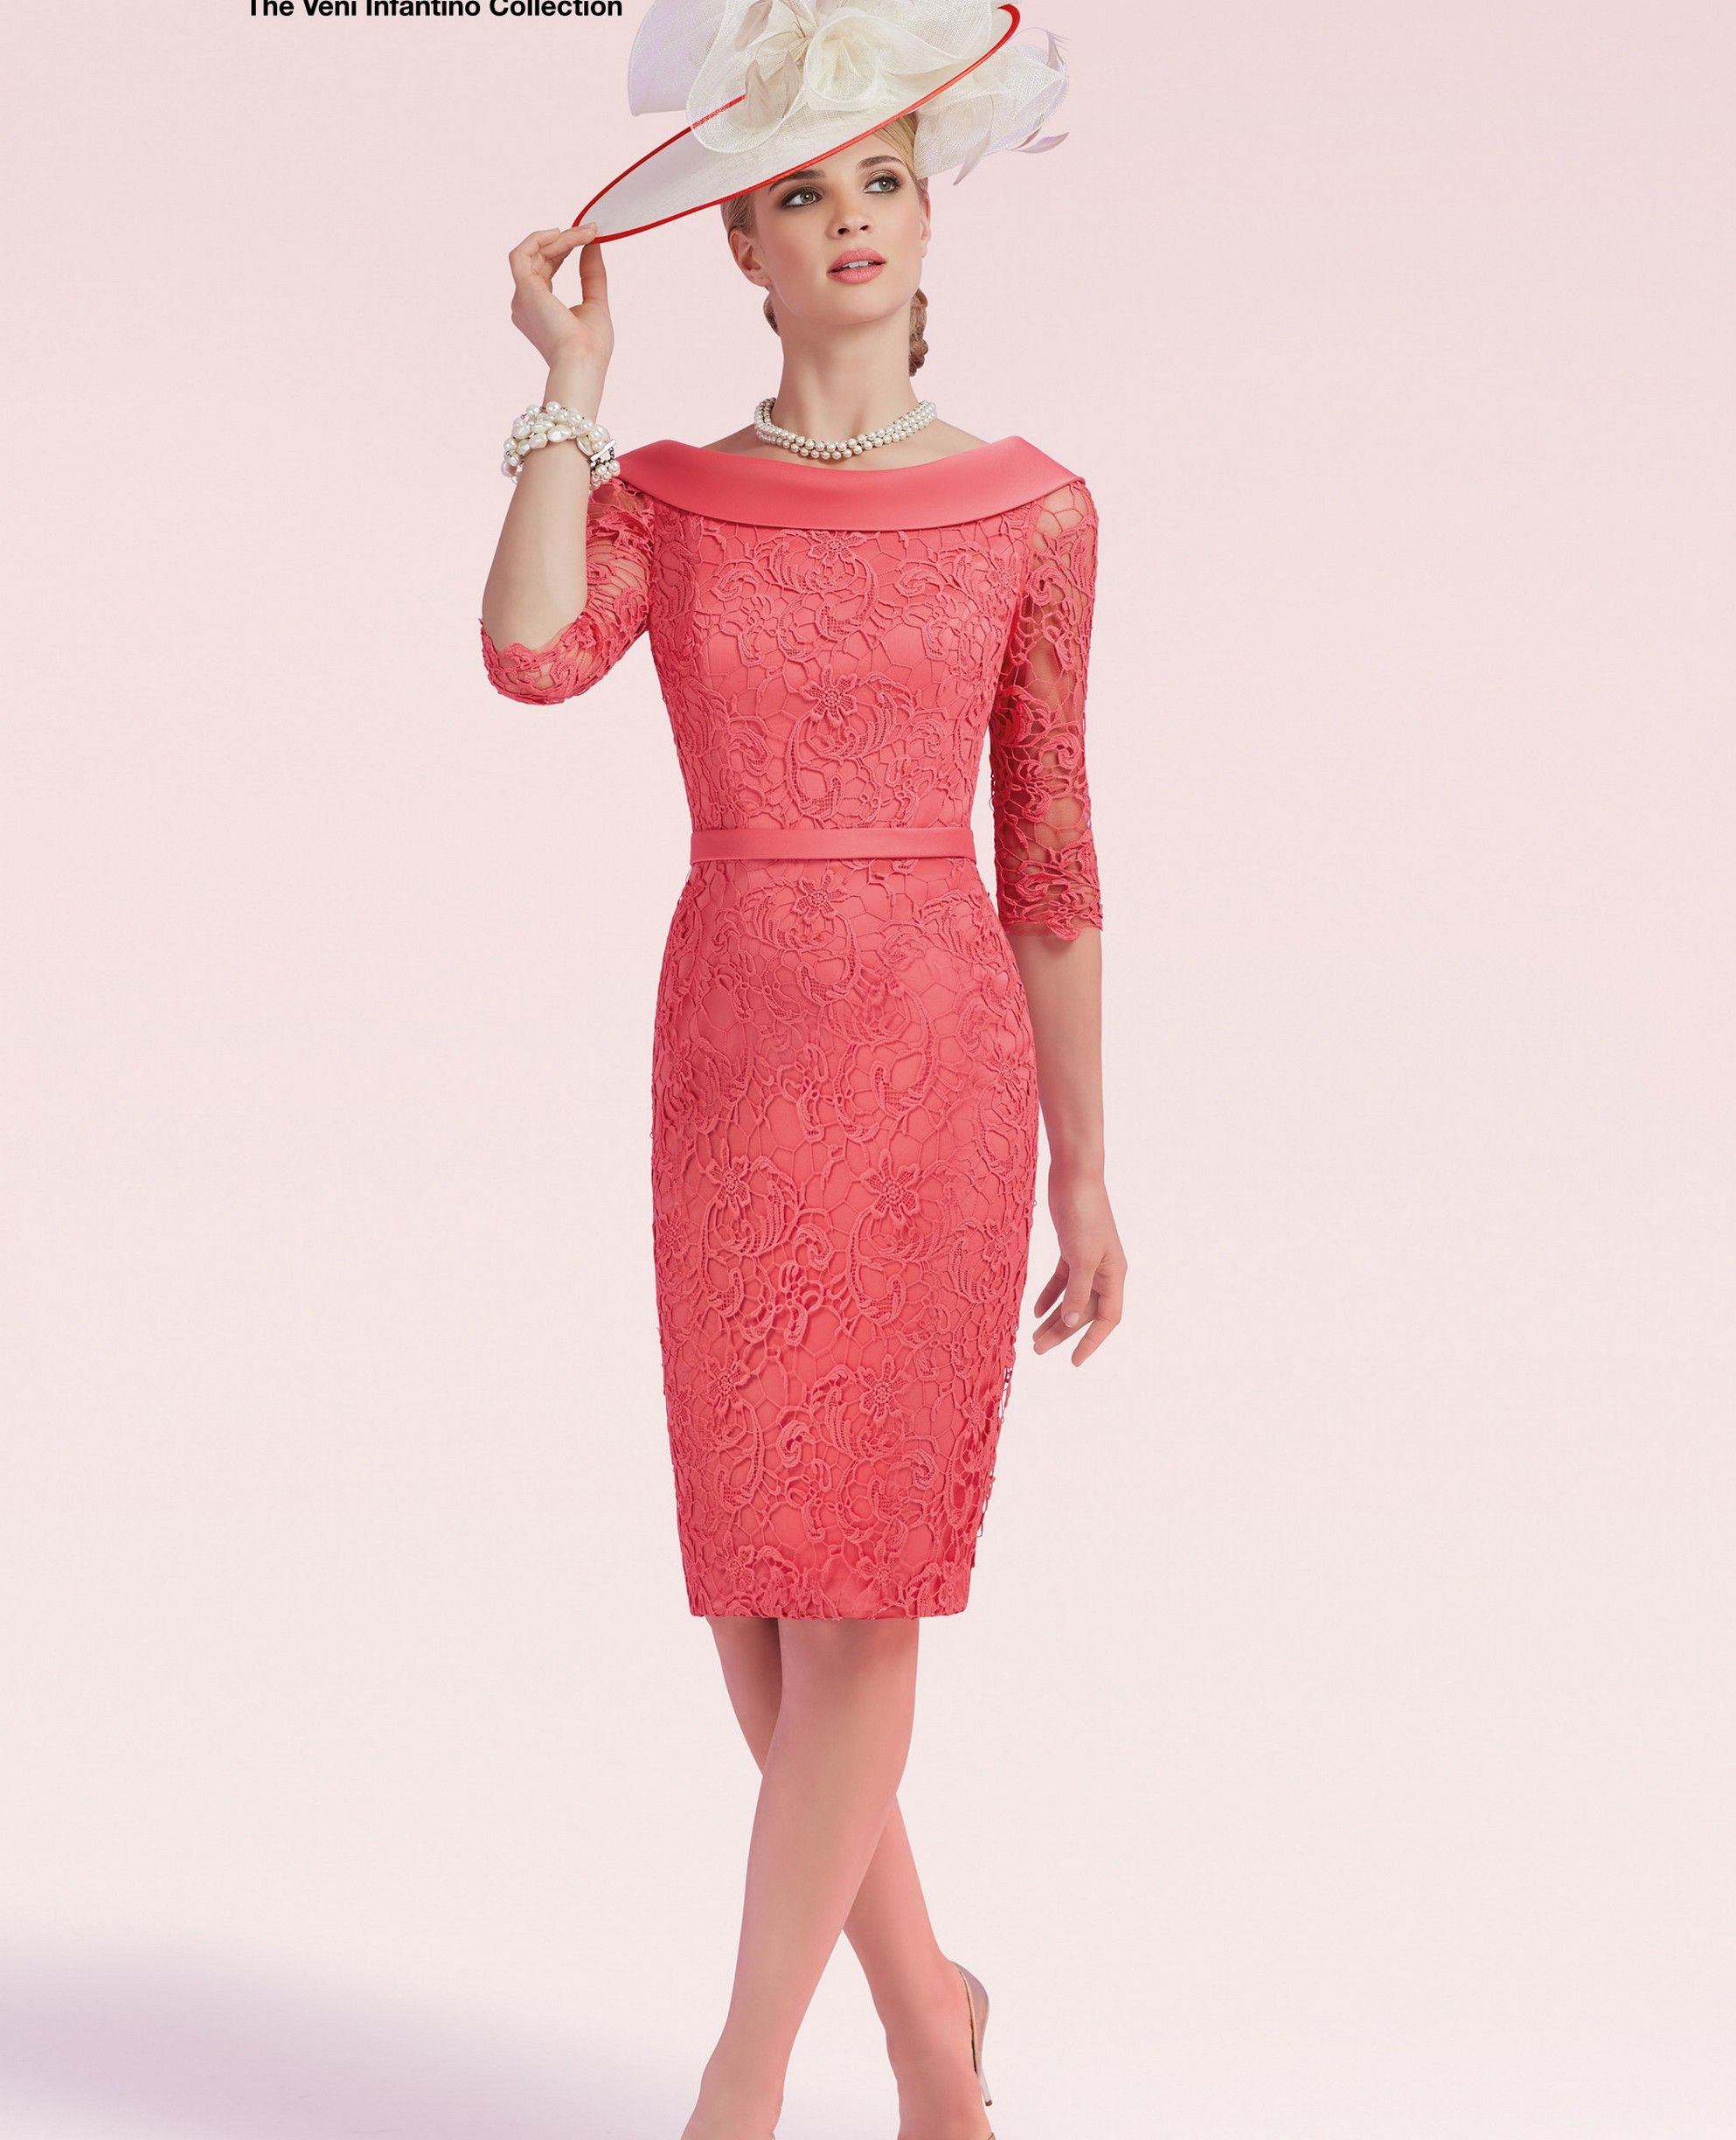 d7022489ba4a Veni Infantino 991247 Colour Coral, price £546. A classic looking slim fit lace  dress with ¾ length sleeves, bateau neckline, low back and satin waistband.